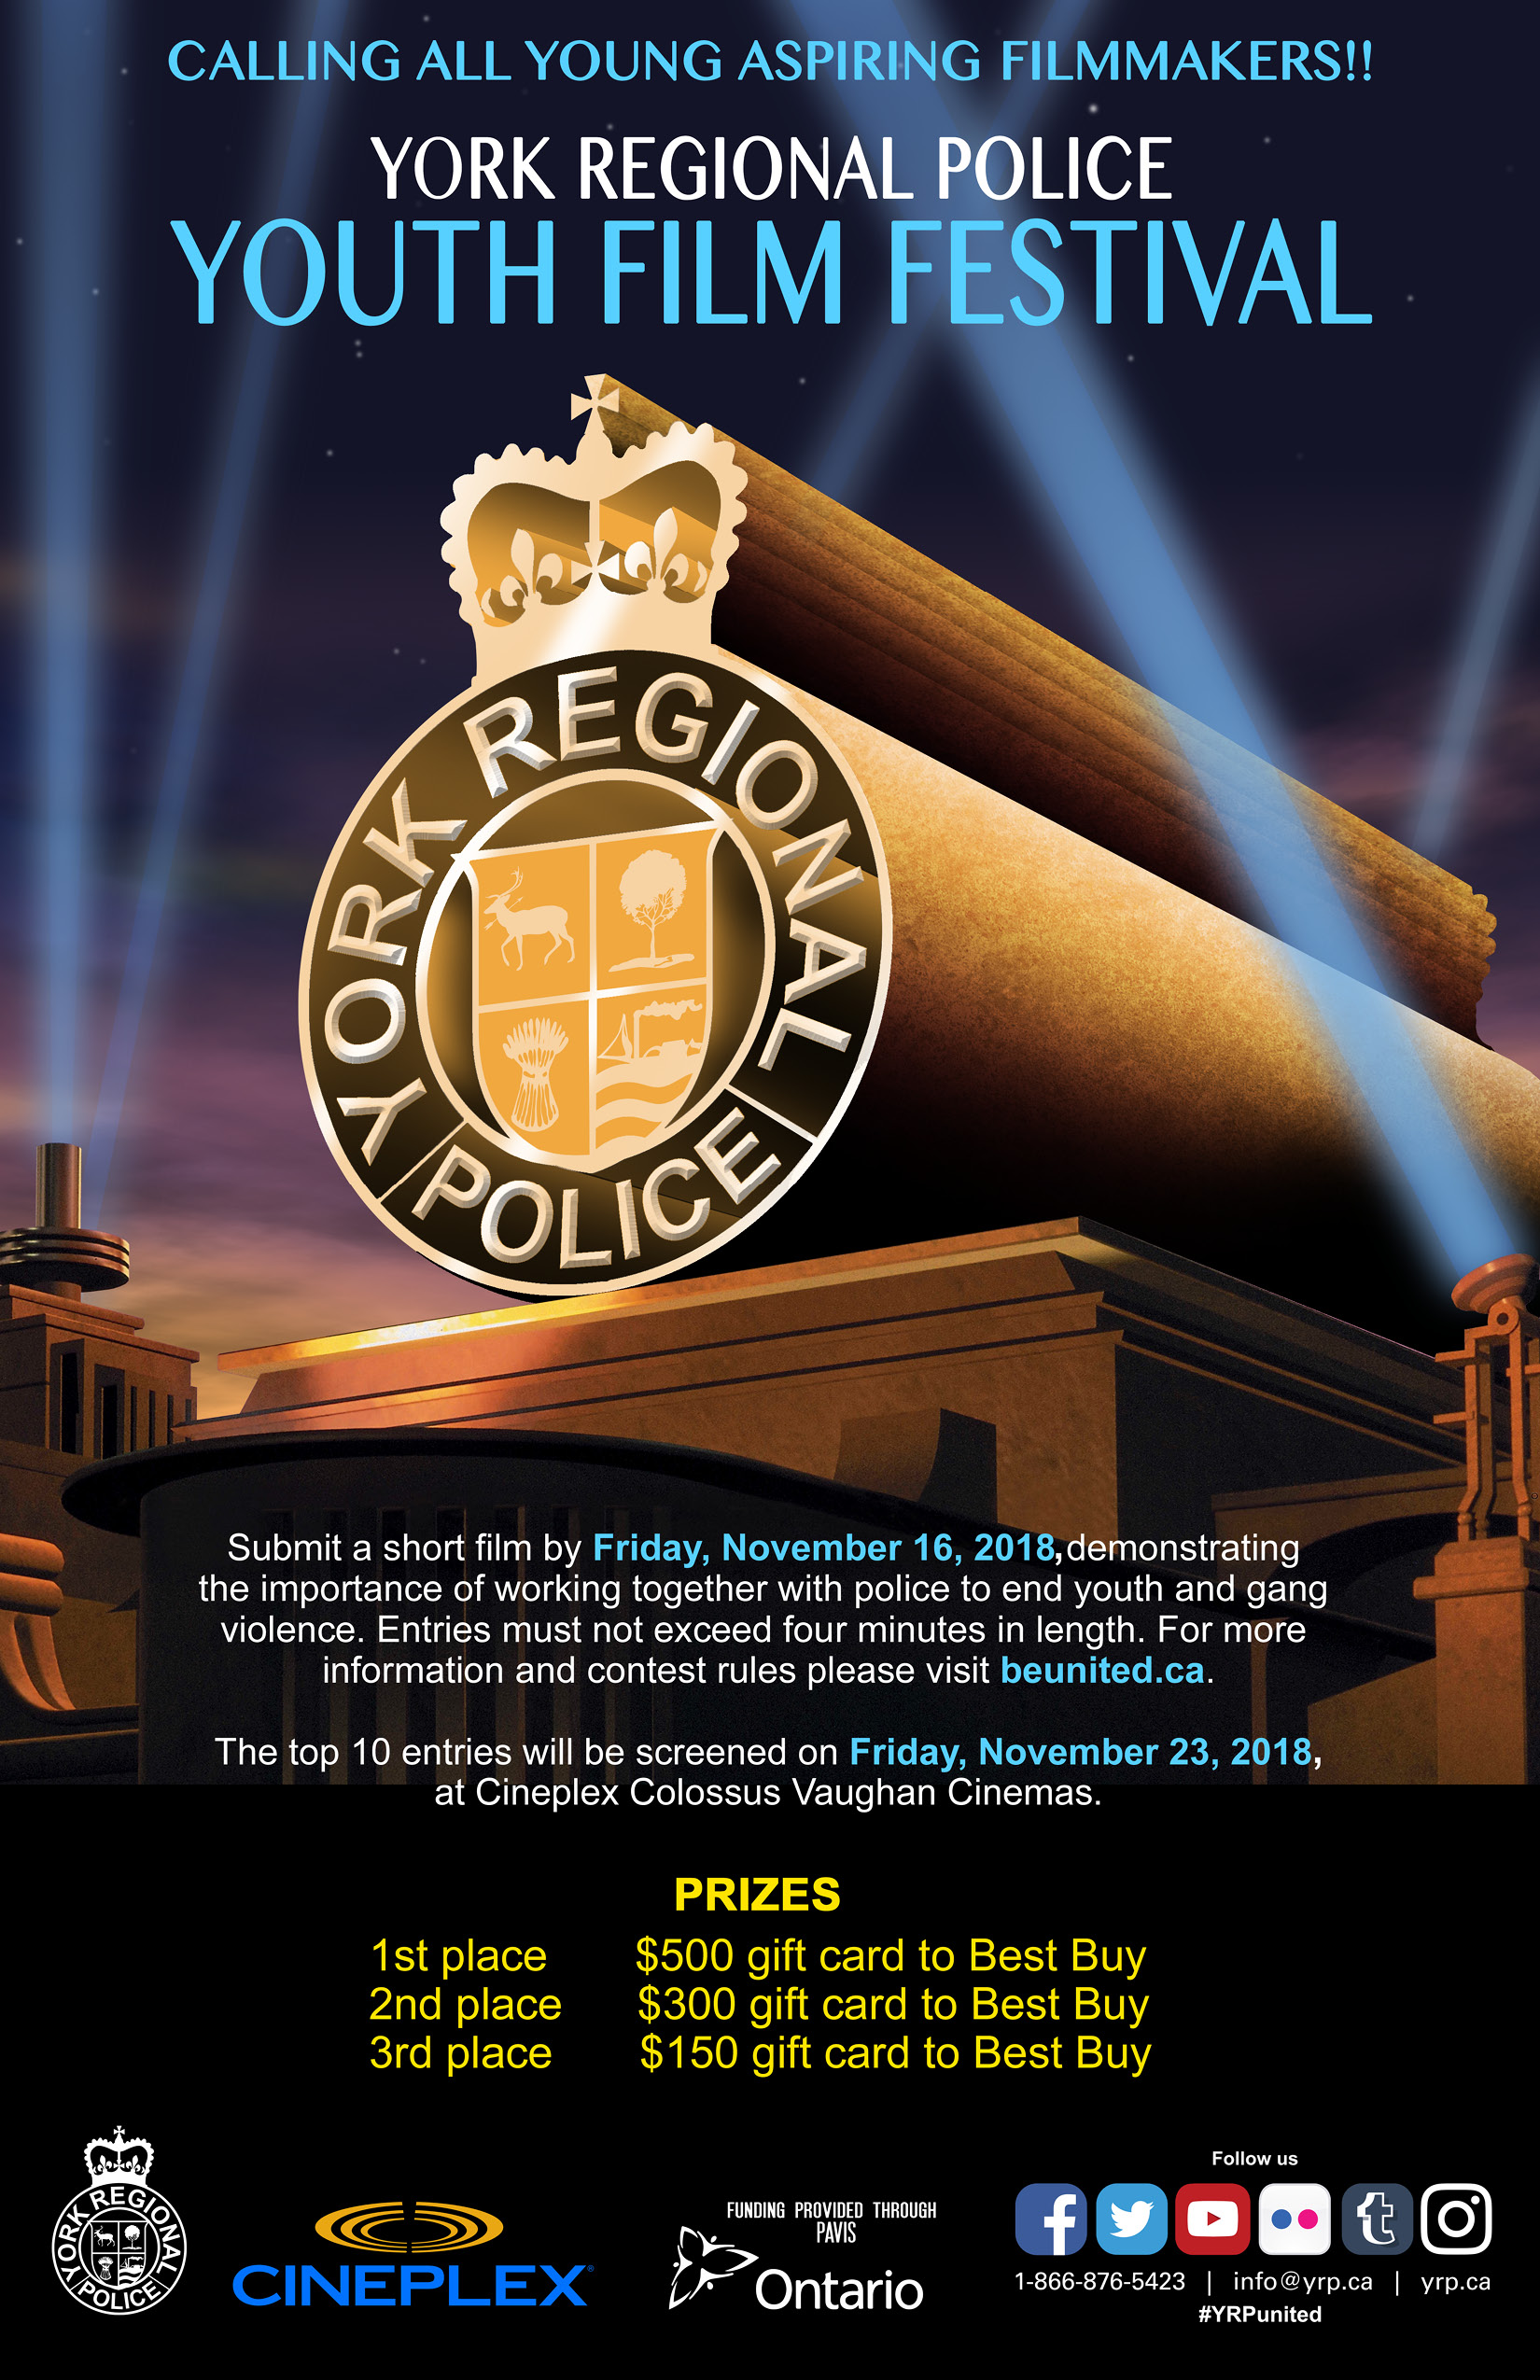 A film contest poster with the YRP logo